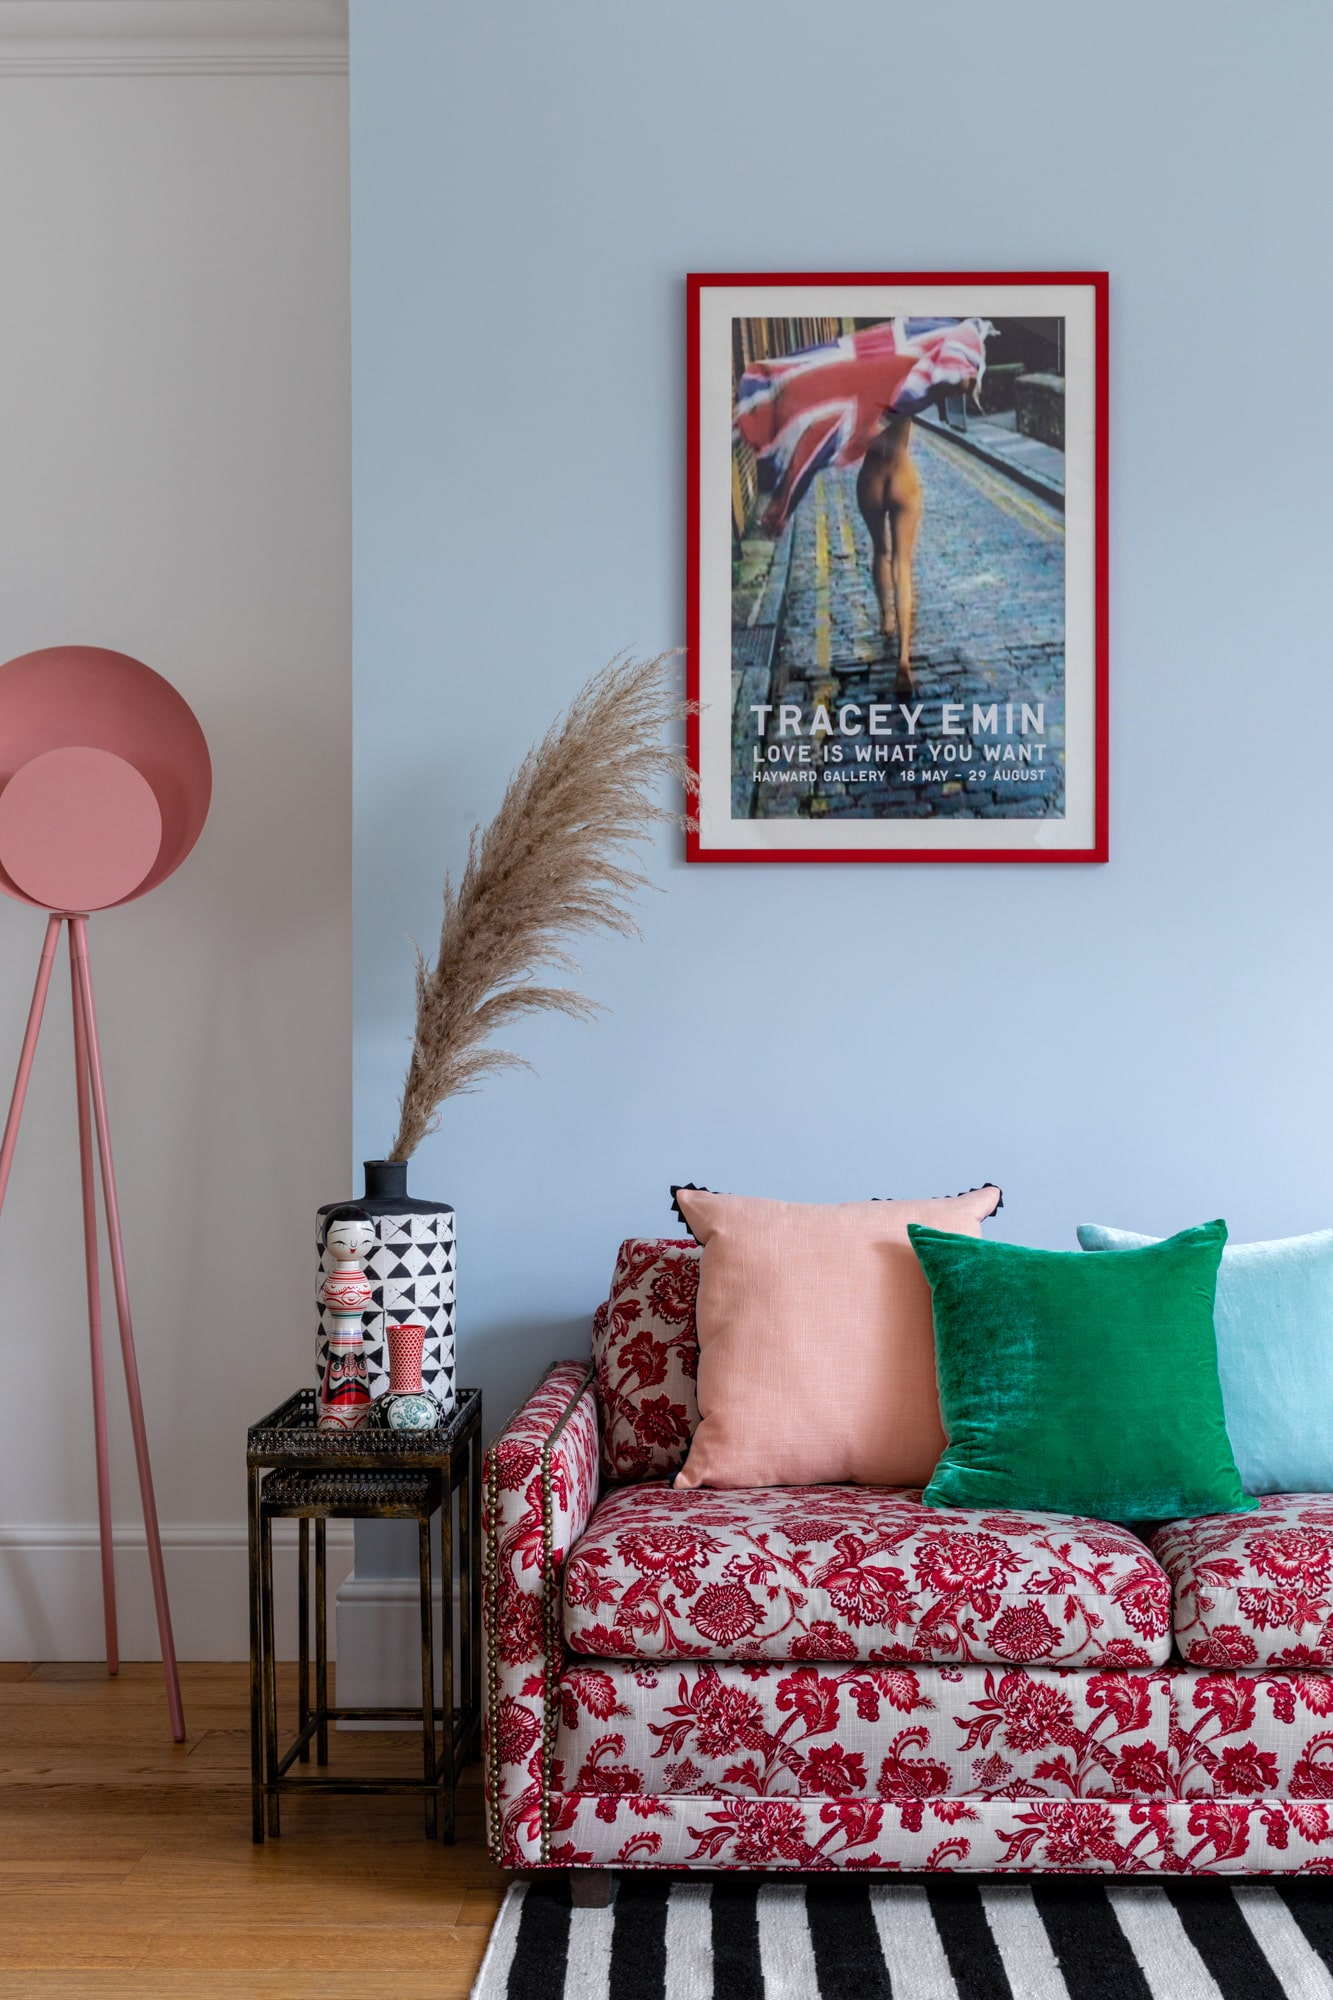 Interior photo of a living room: light blue walls; sofa with red pattern; colourful cushions; Tracey Emin poster; black and white striped rug; side table; astanding pink lamp